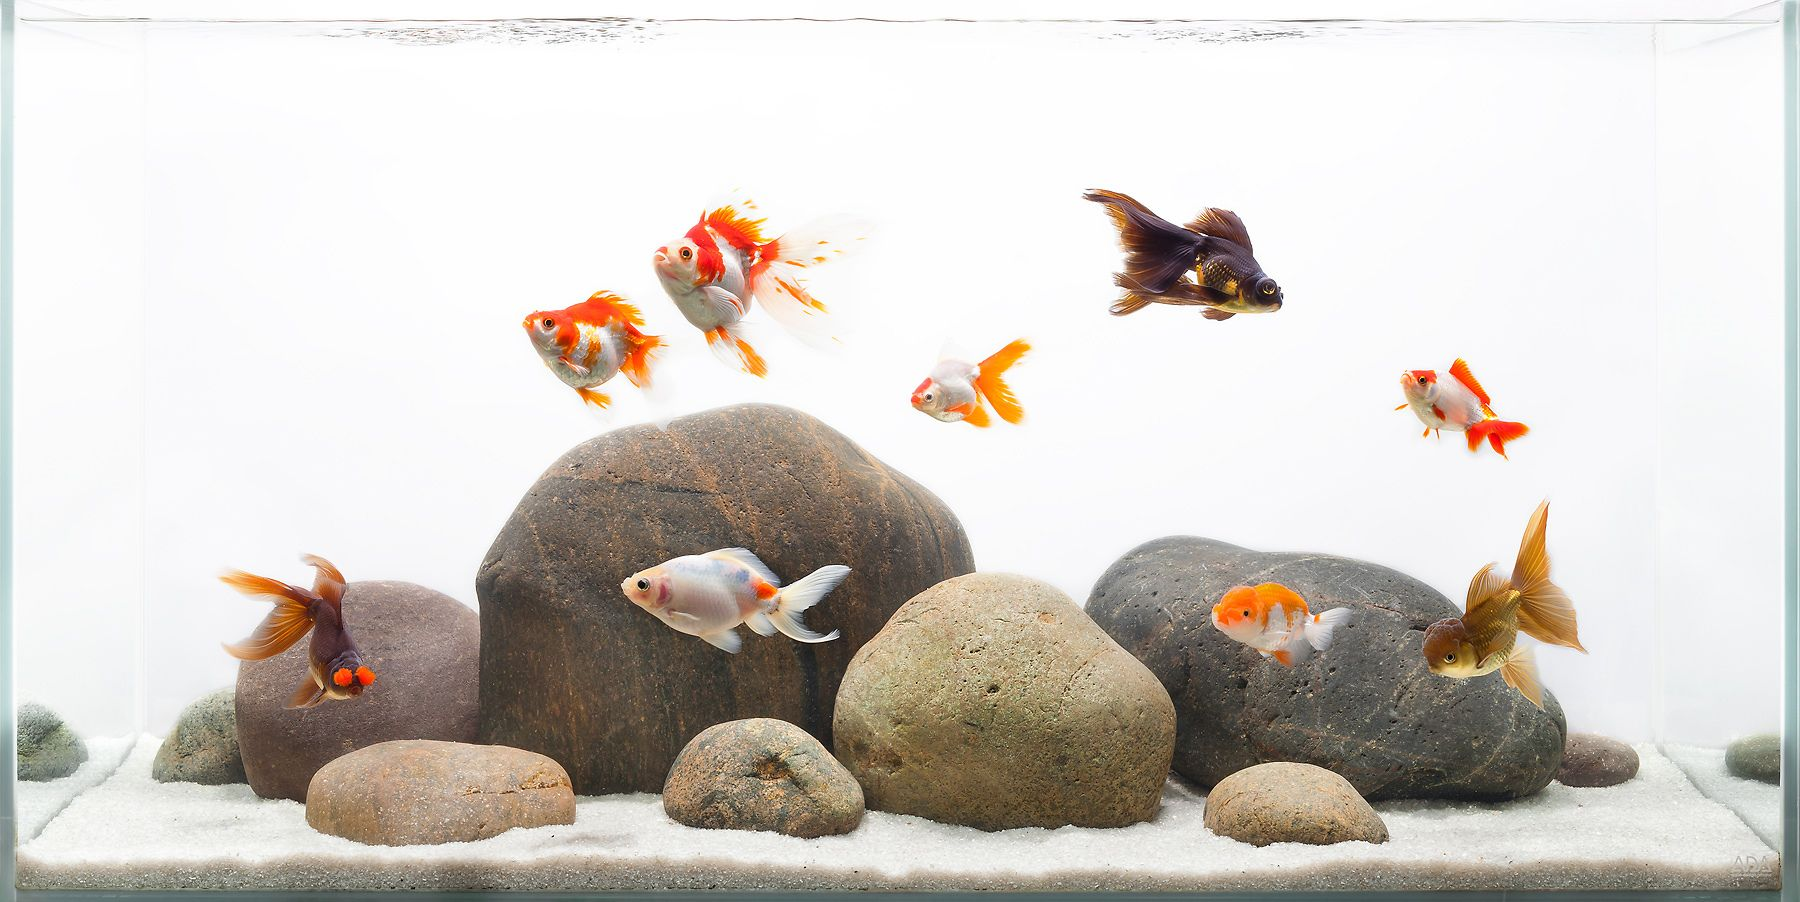 Fish in tank with goldfish - Aquarium Design Group A Layout For Fancy Goldfish